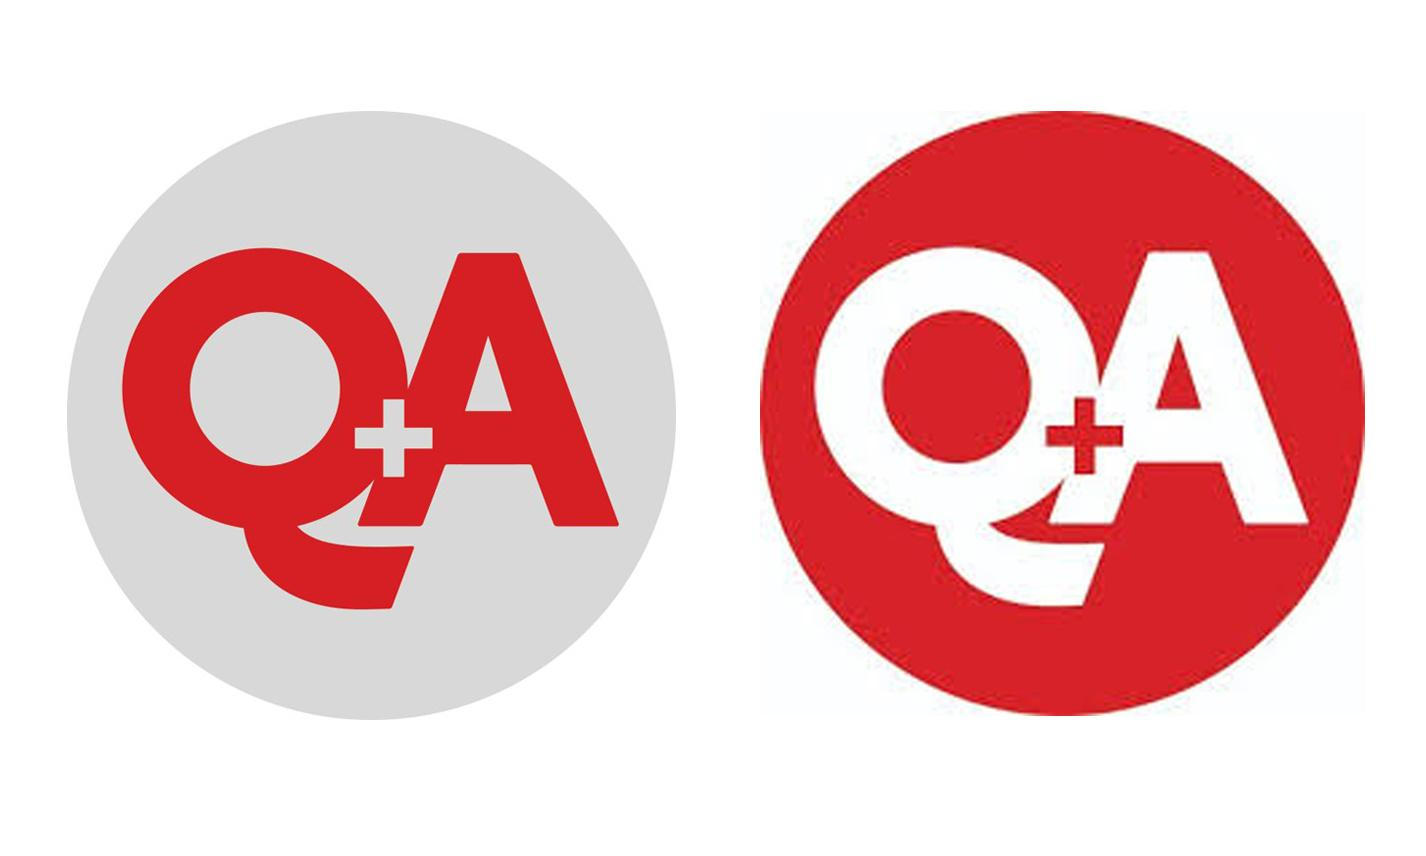 ABC does swift reverse on new Q&A logo after Red Cross knocks